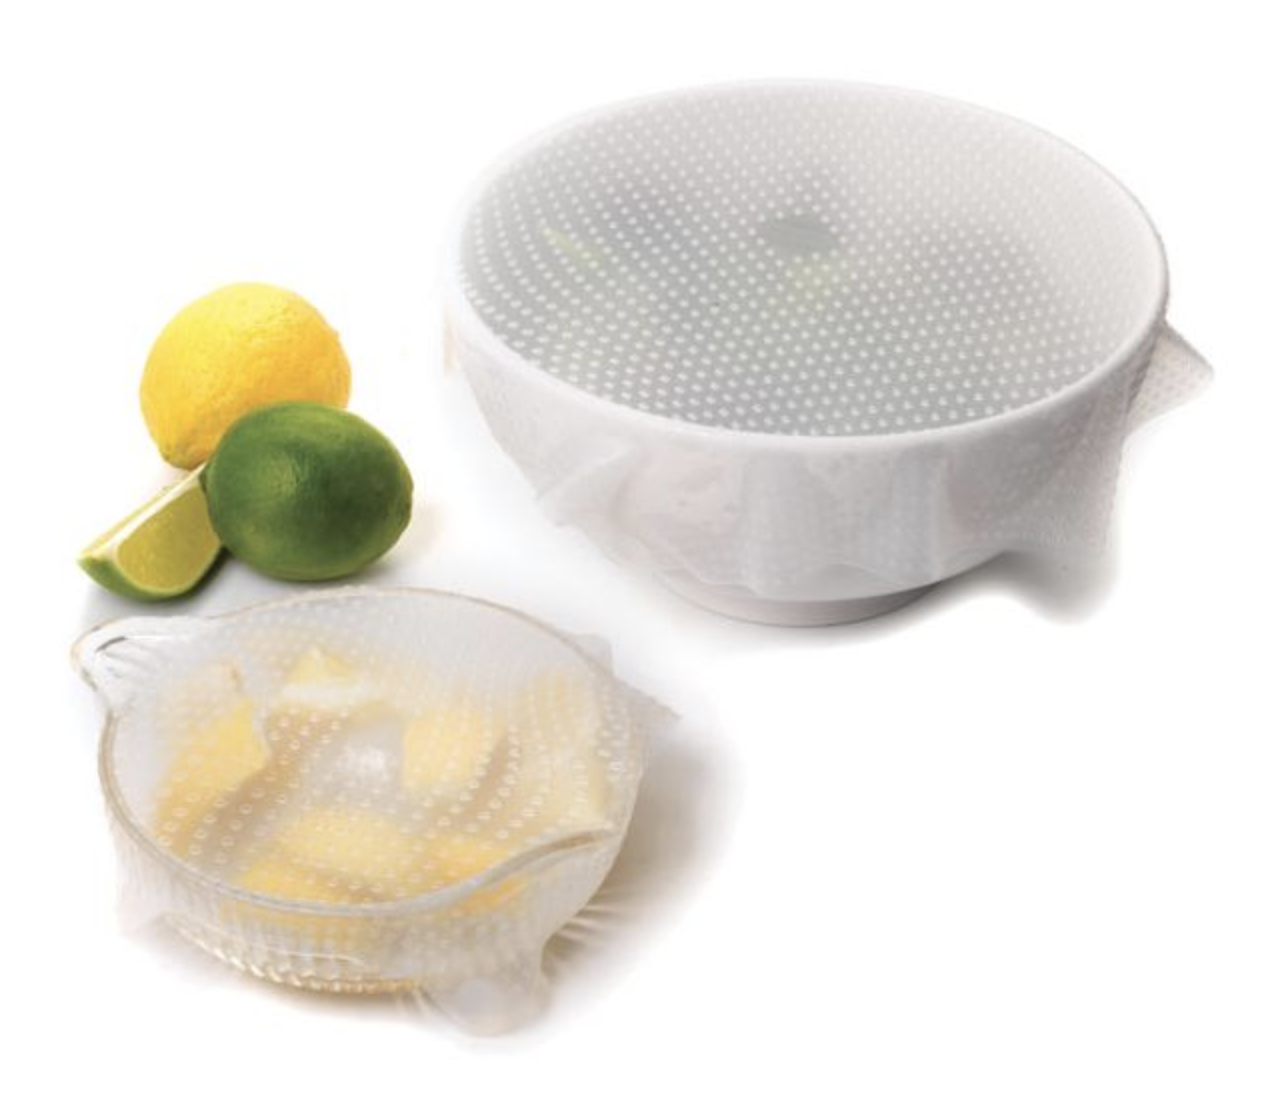 Sili Stretch Silicone Bowl Covers, set of 2